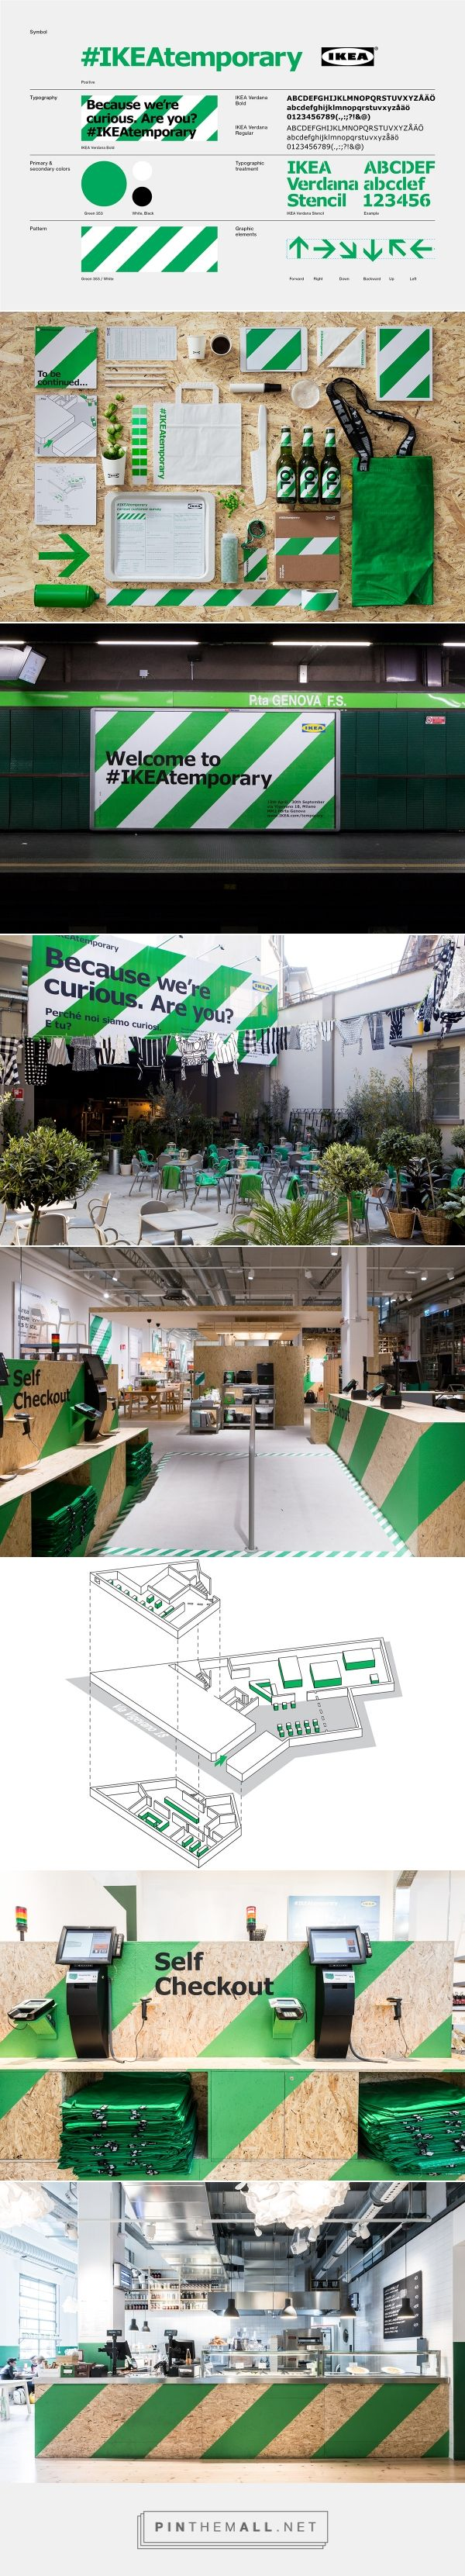 #IKEAtemporary on Behance... - a grouped images picture - Pin Them All